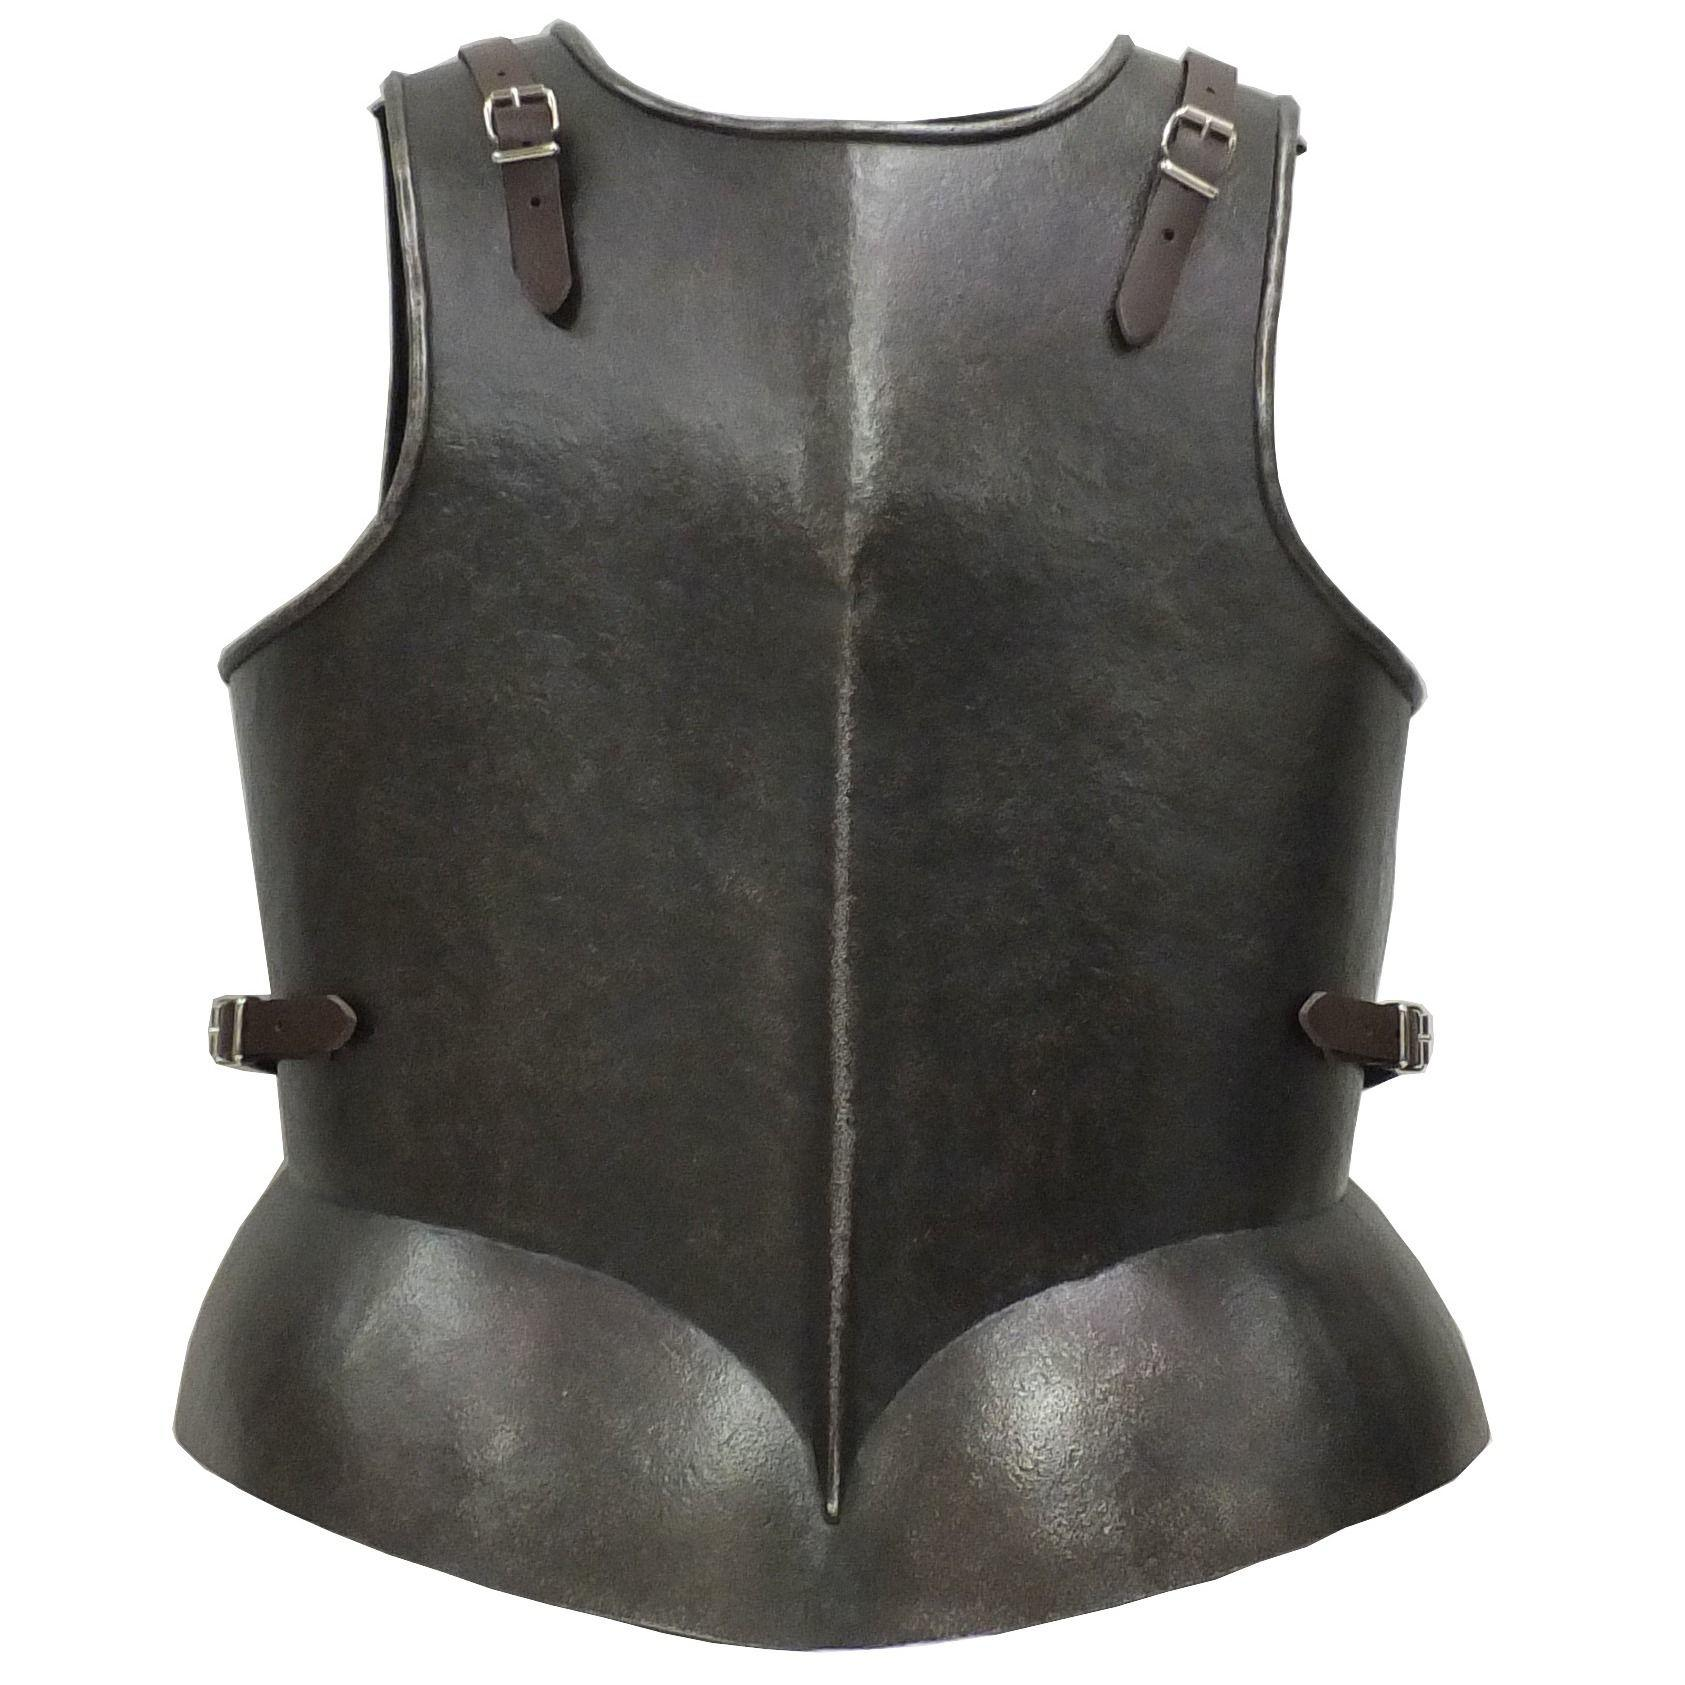 Munition back and breast larp armour